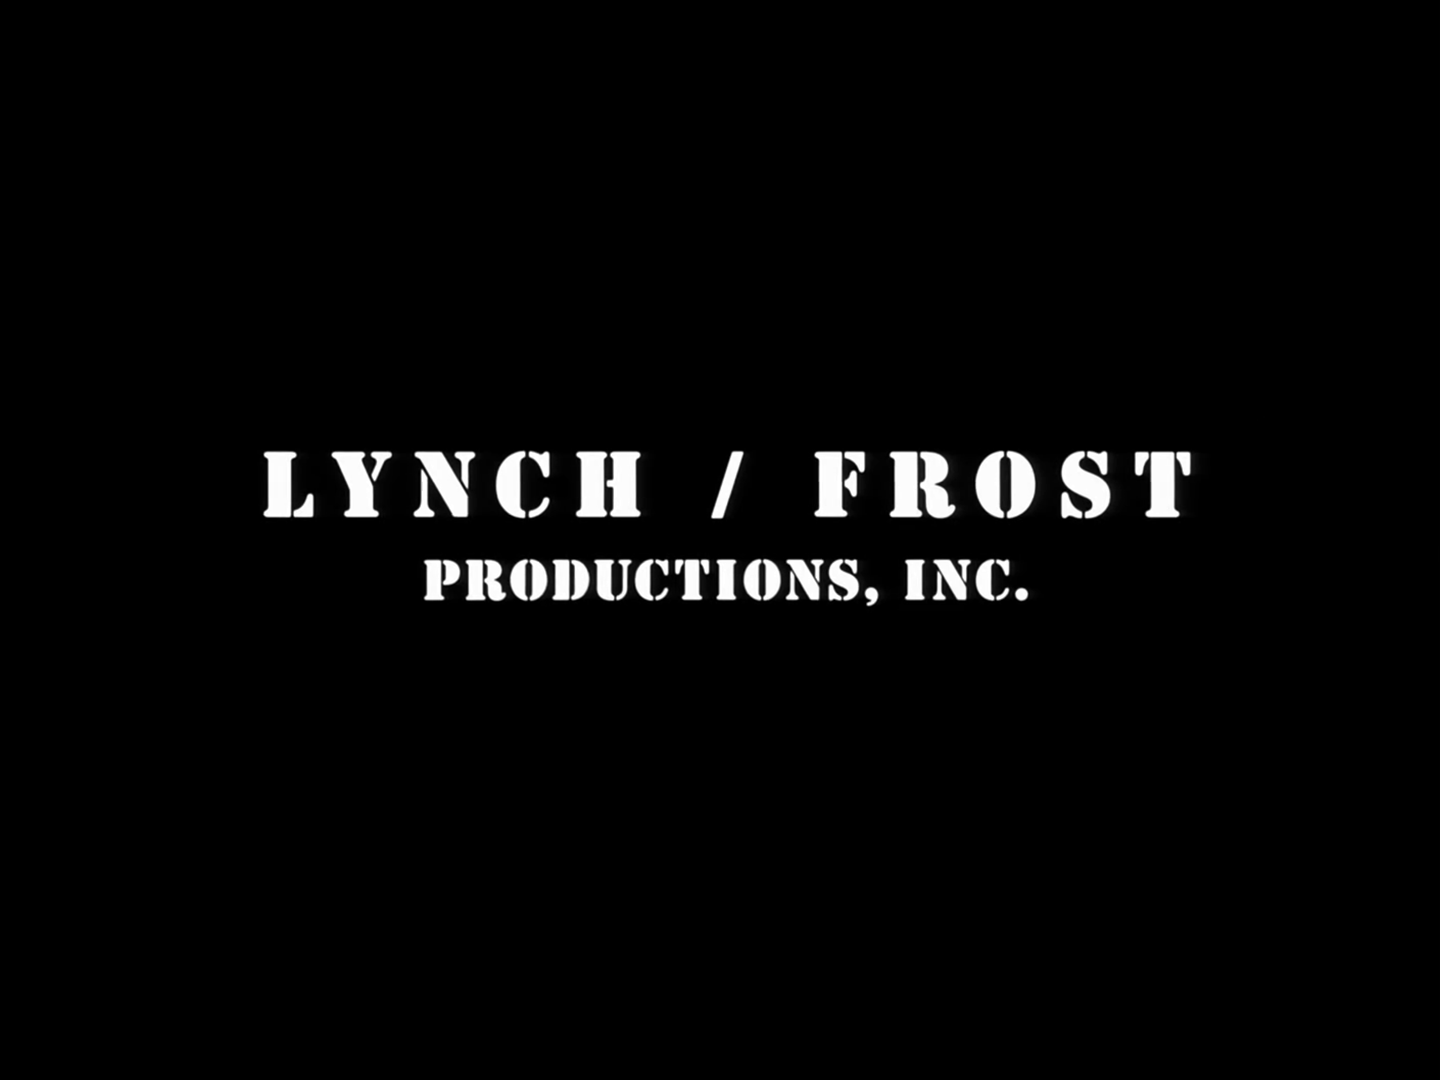 Lynch/Frost Productions